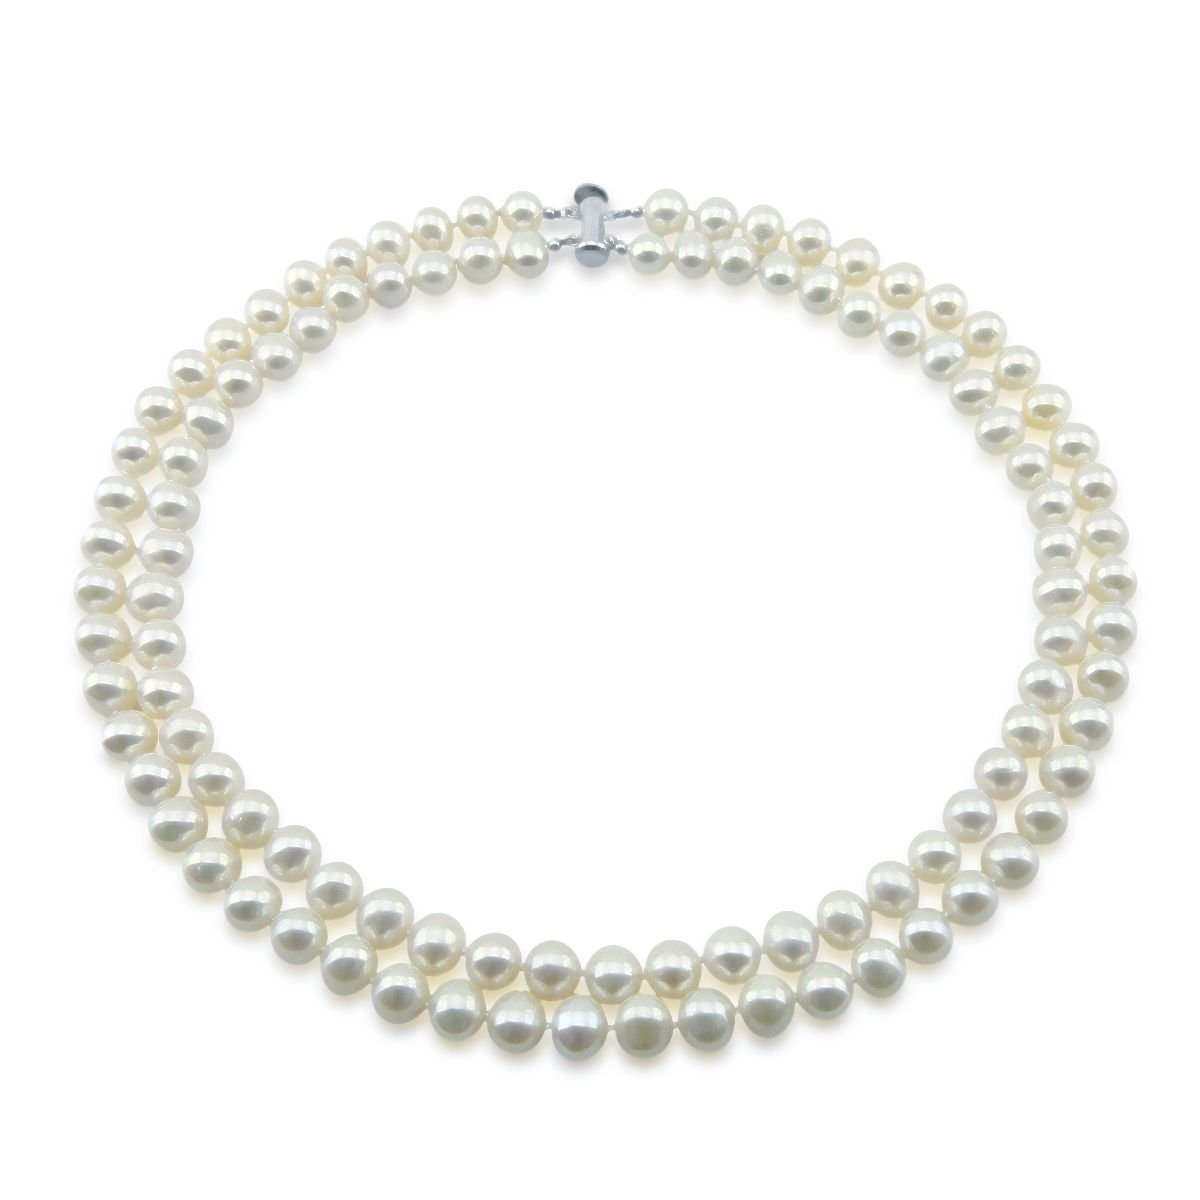 Sterling Silver 2 Rows 8-9mm White Freshwater Cultured Pearl High Luster Necklace 17''-18''